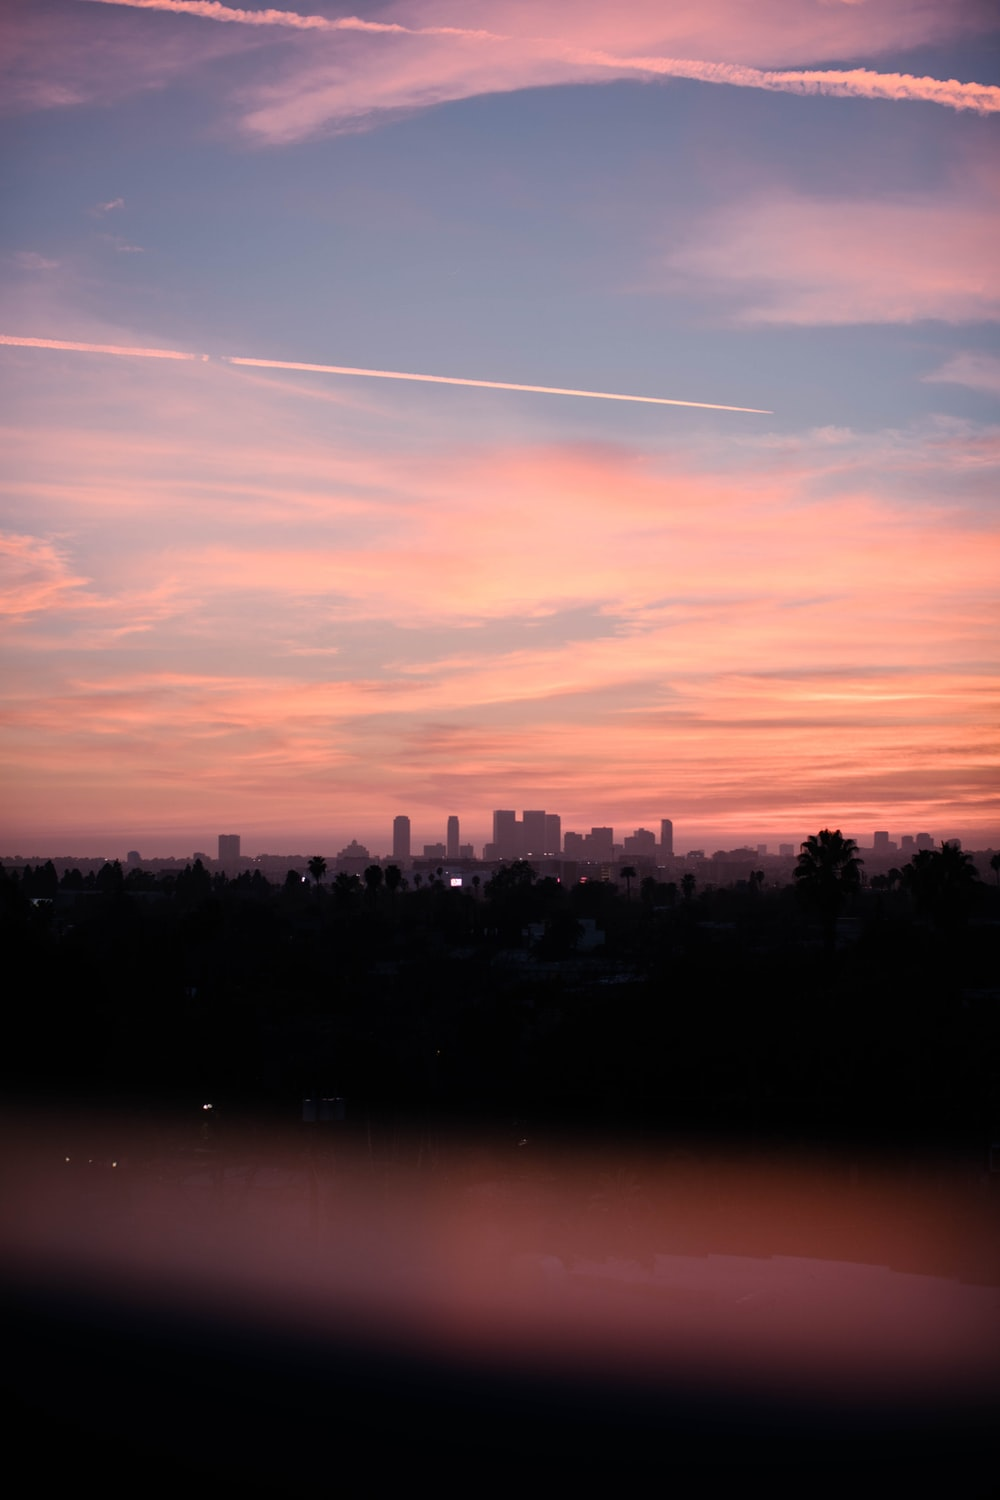 pink sky at sunset over city